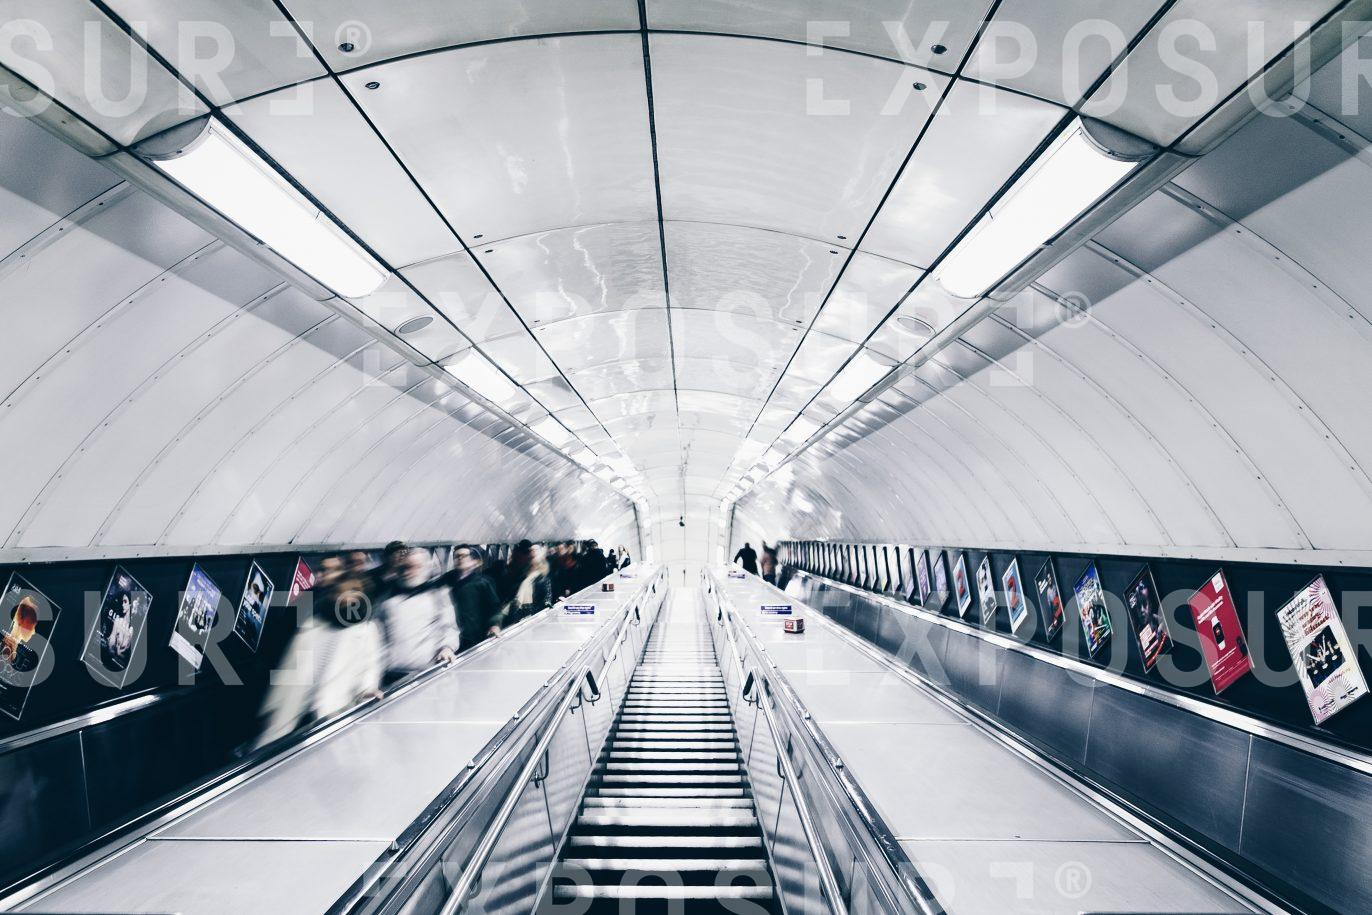 Escalator at a tube station